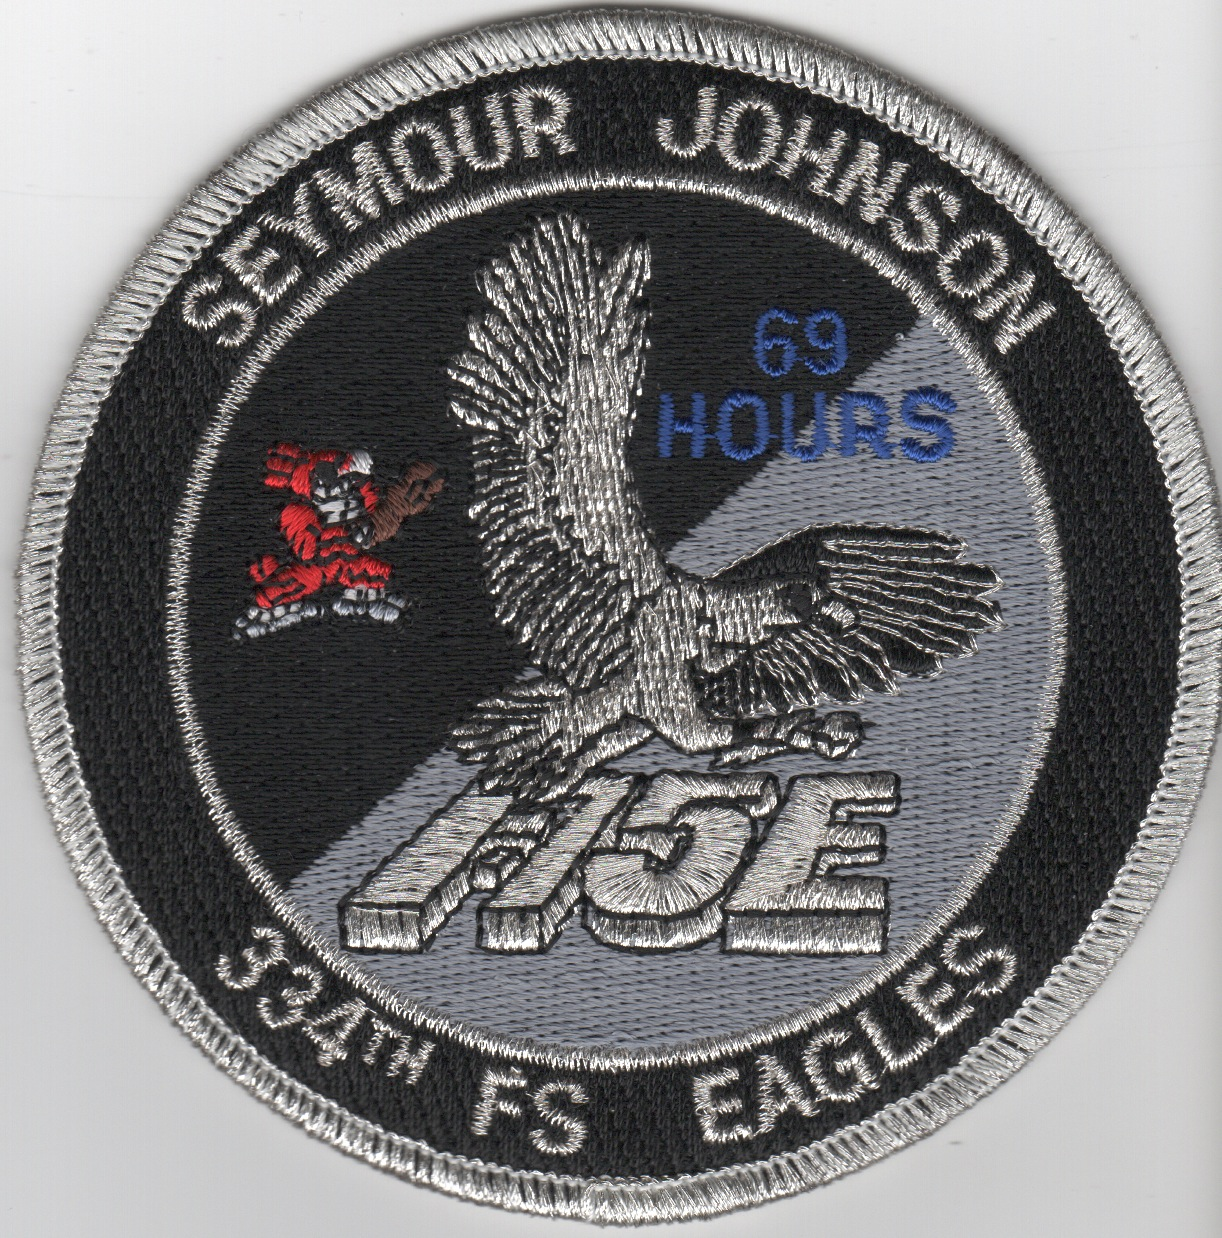 334FS F-15E 69 Hours 'Tinsel' Patch (Black)